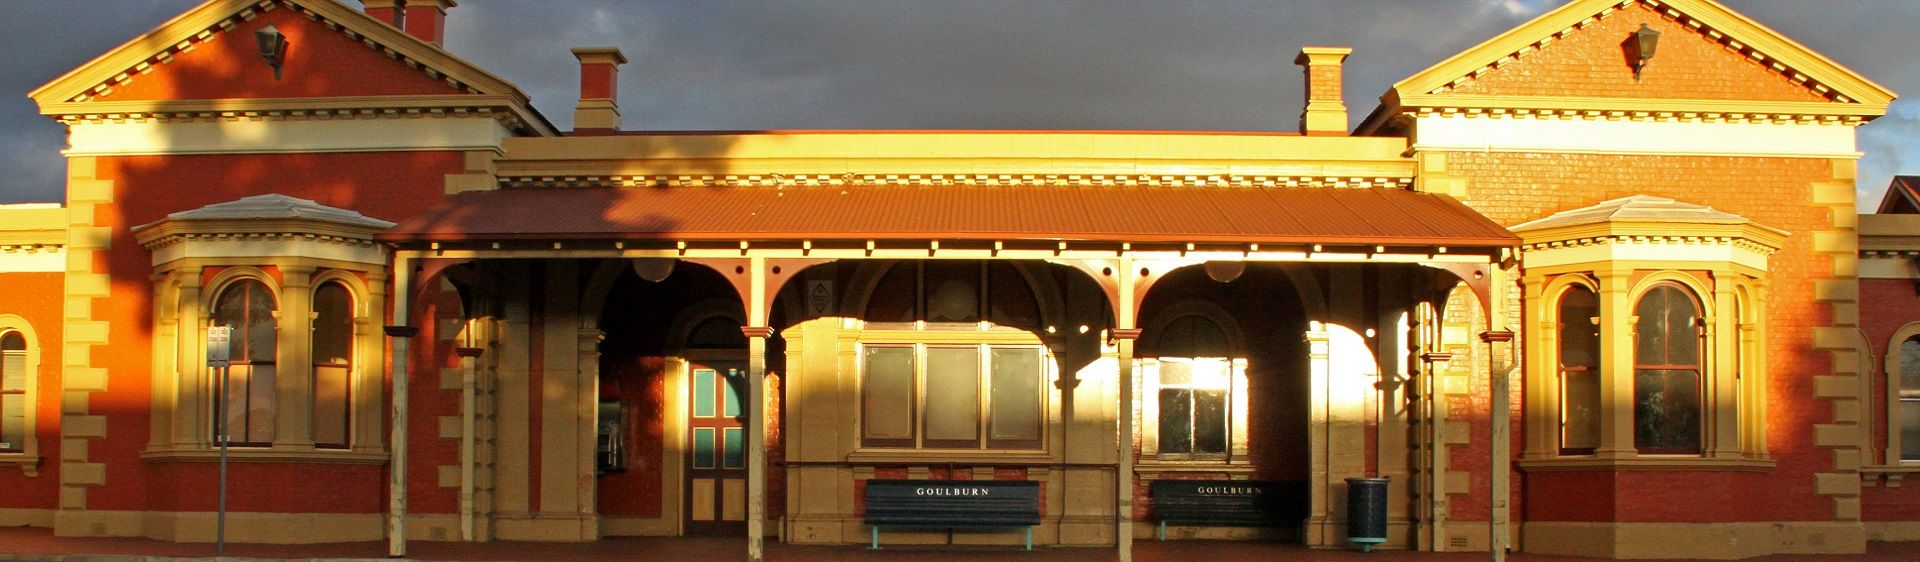 The heritage-listed Goulburn Railway Station, built in the 1860s